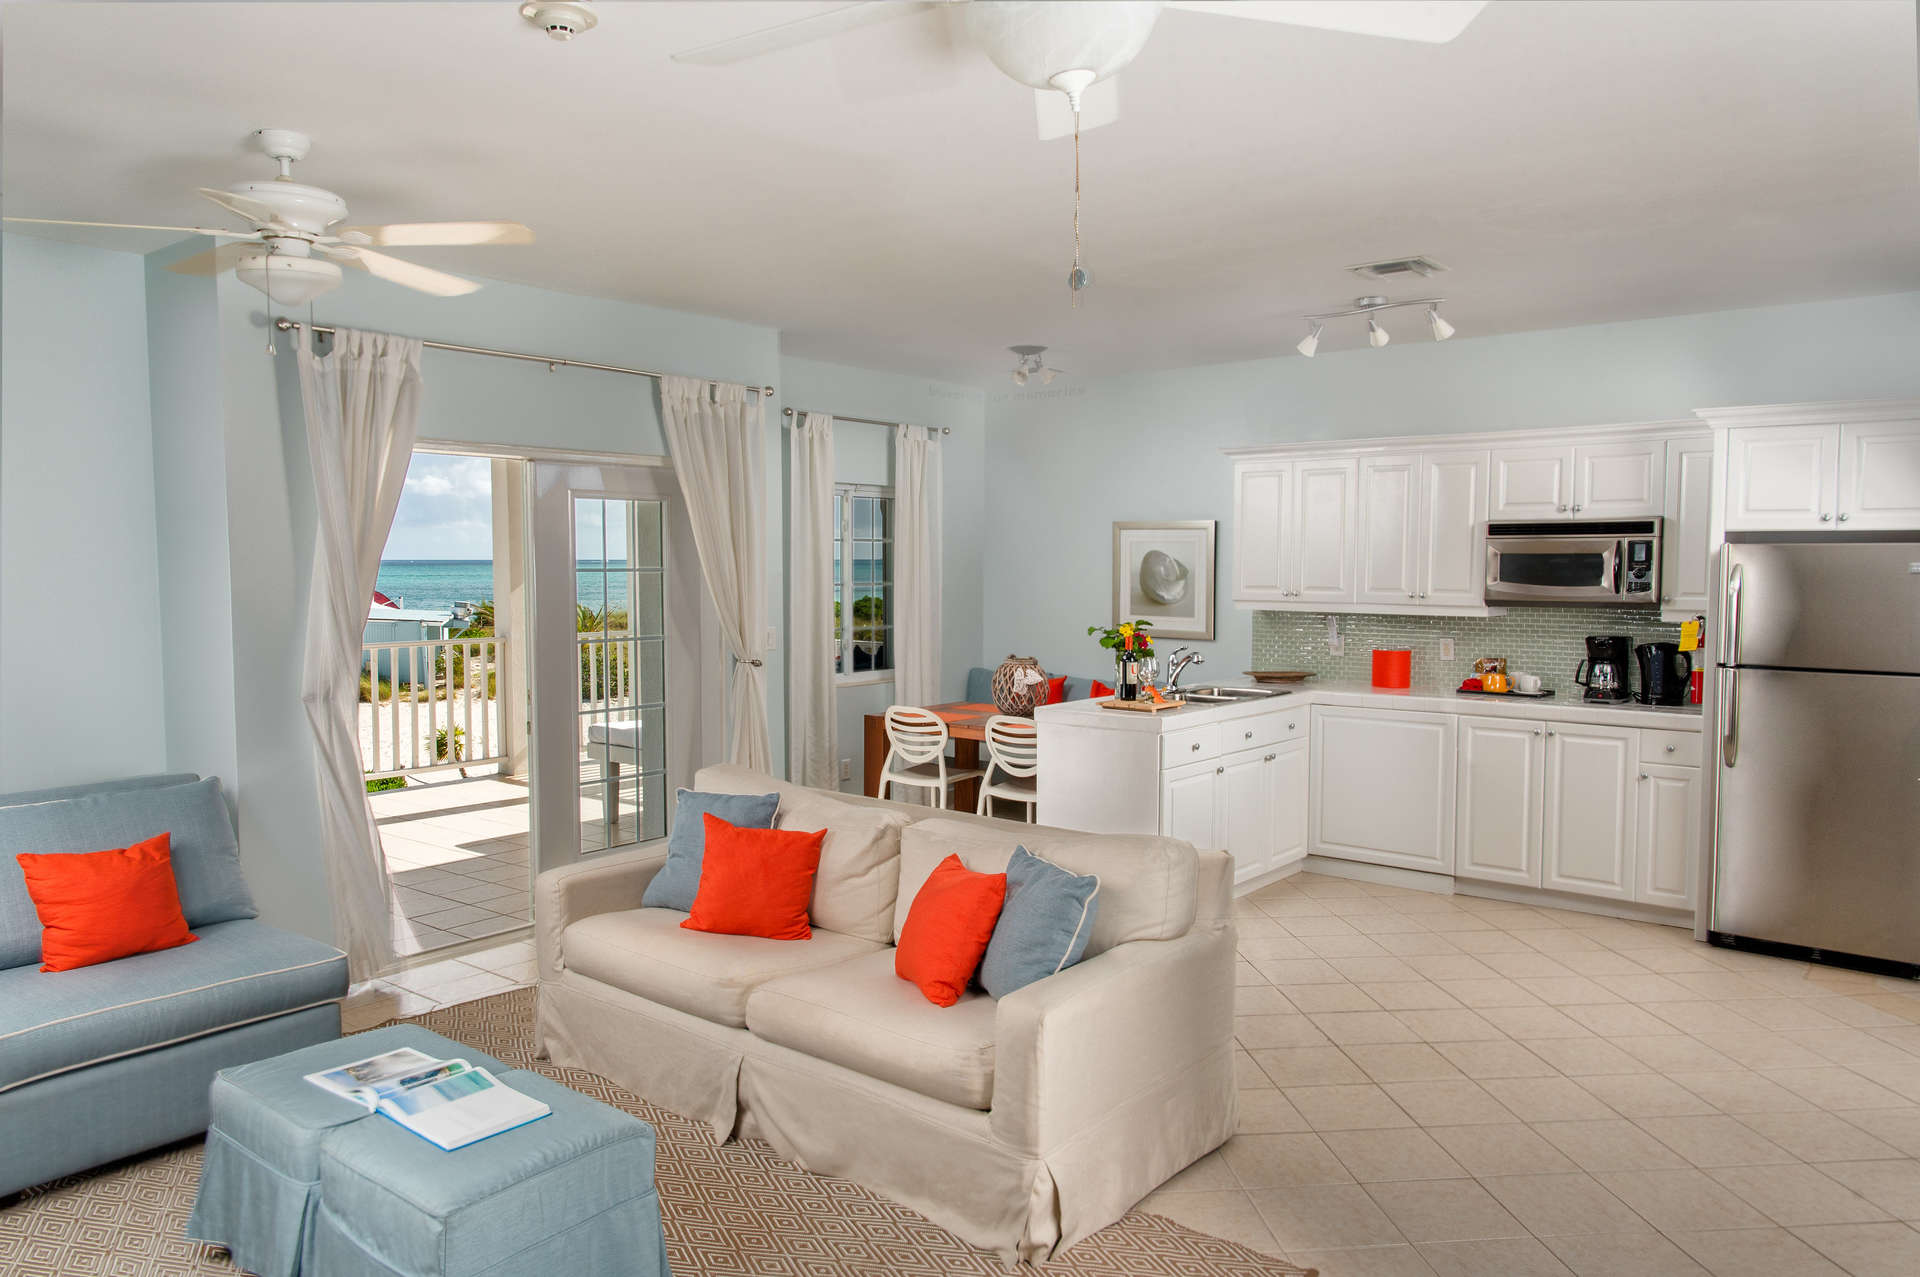 Luxury villa rentals caribbean - Turks and caicos - Providenciales - Beach house turks caicos - Oceanfront Suite 1 BDM - Image 1/7